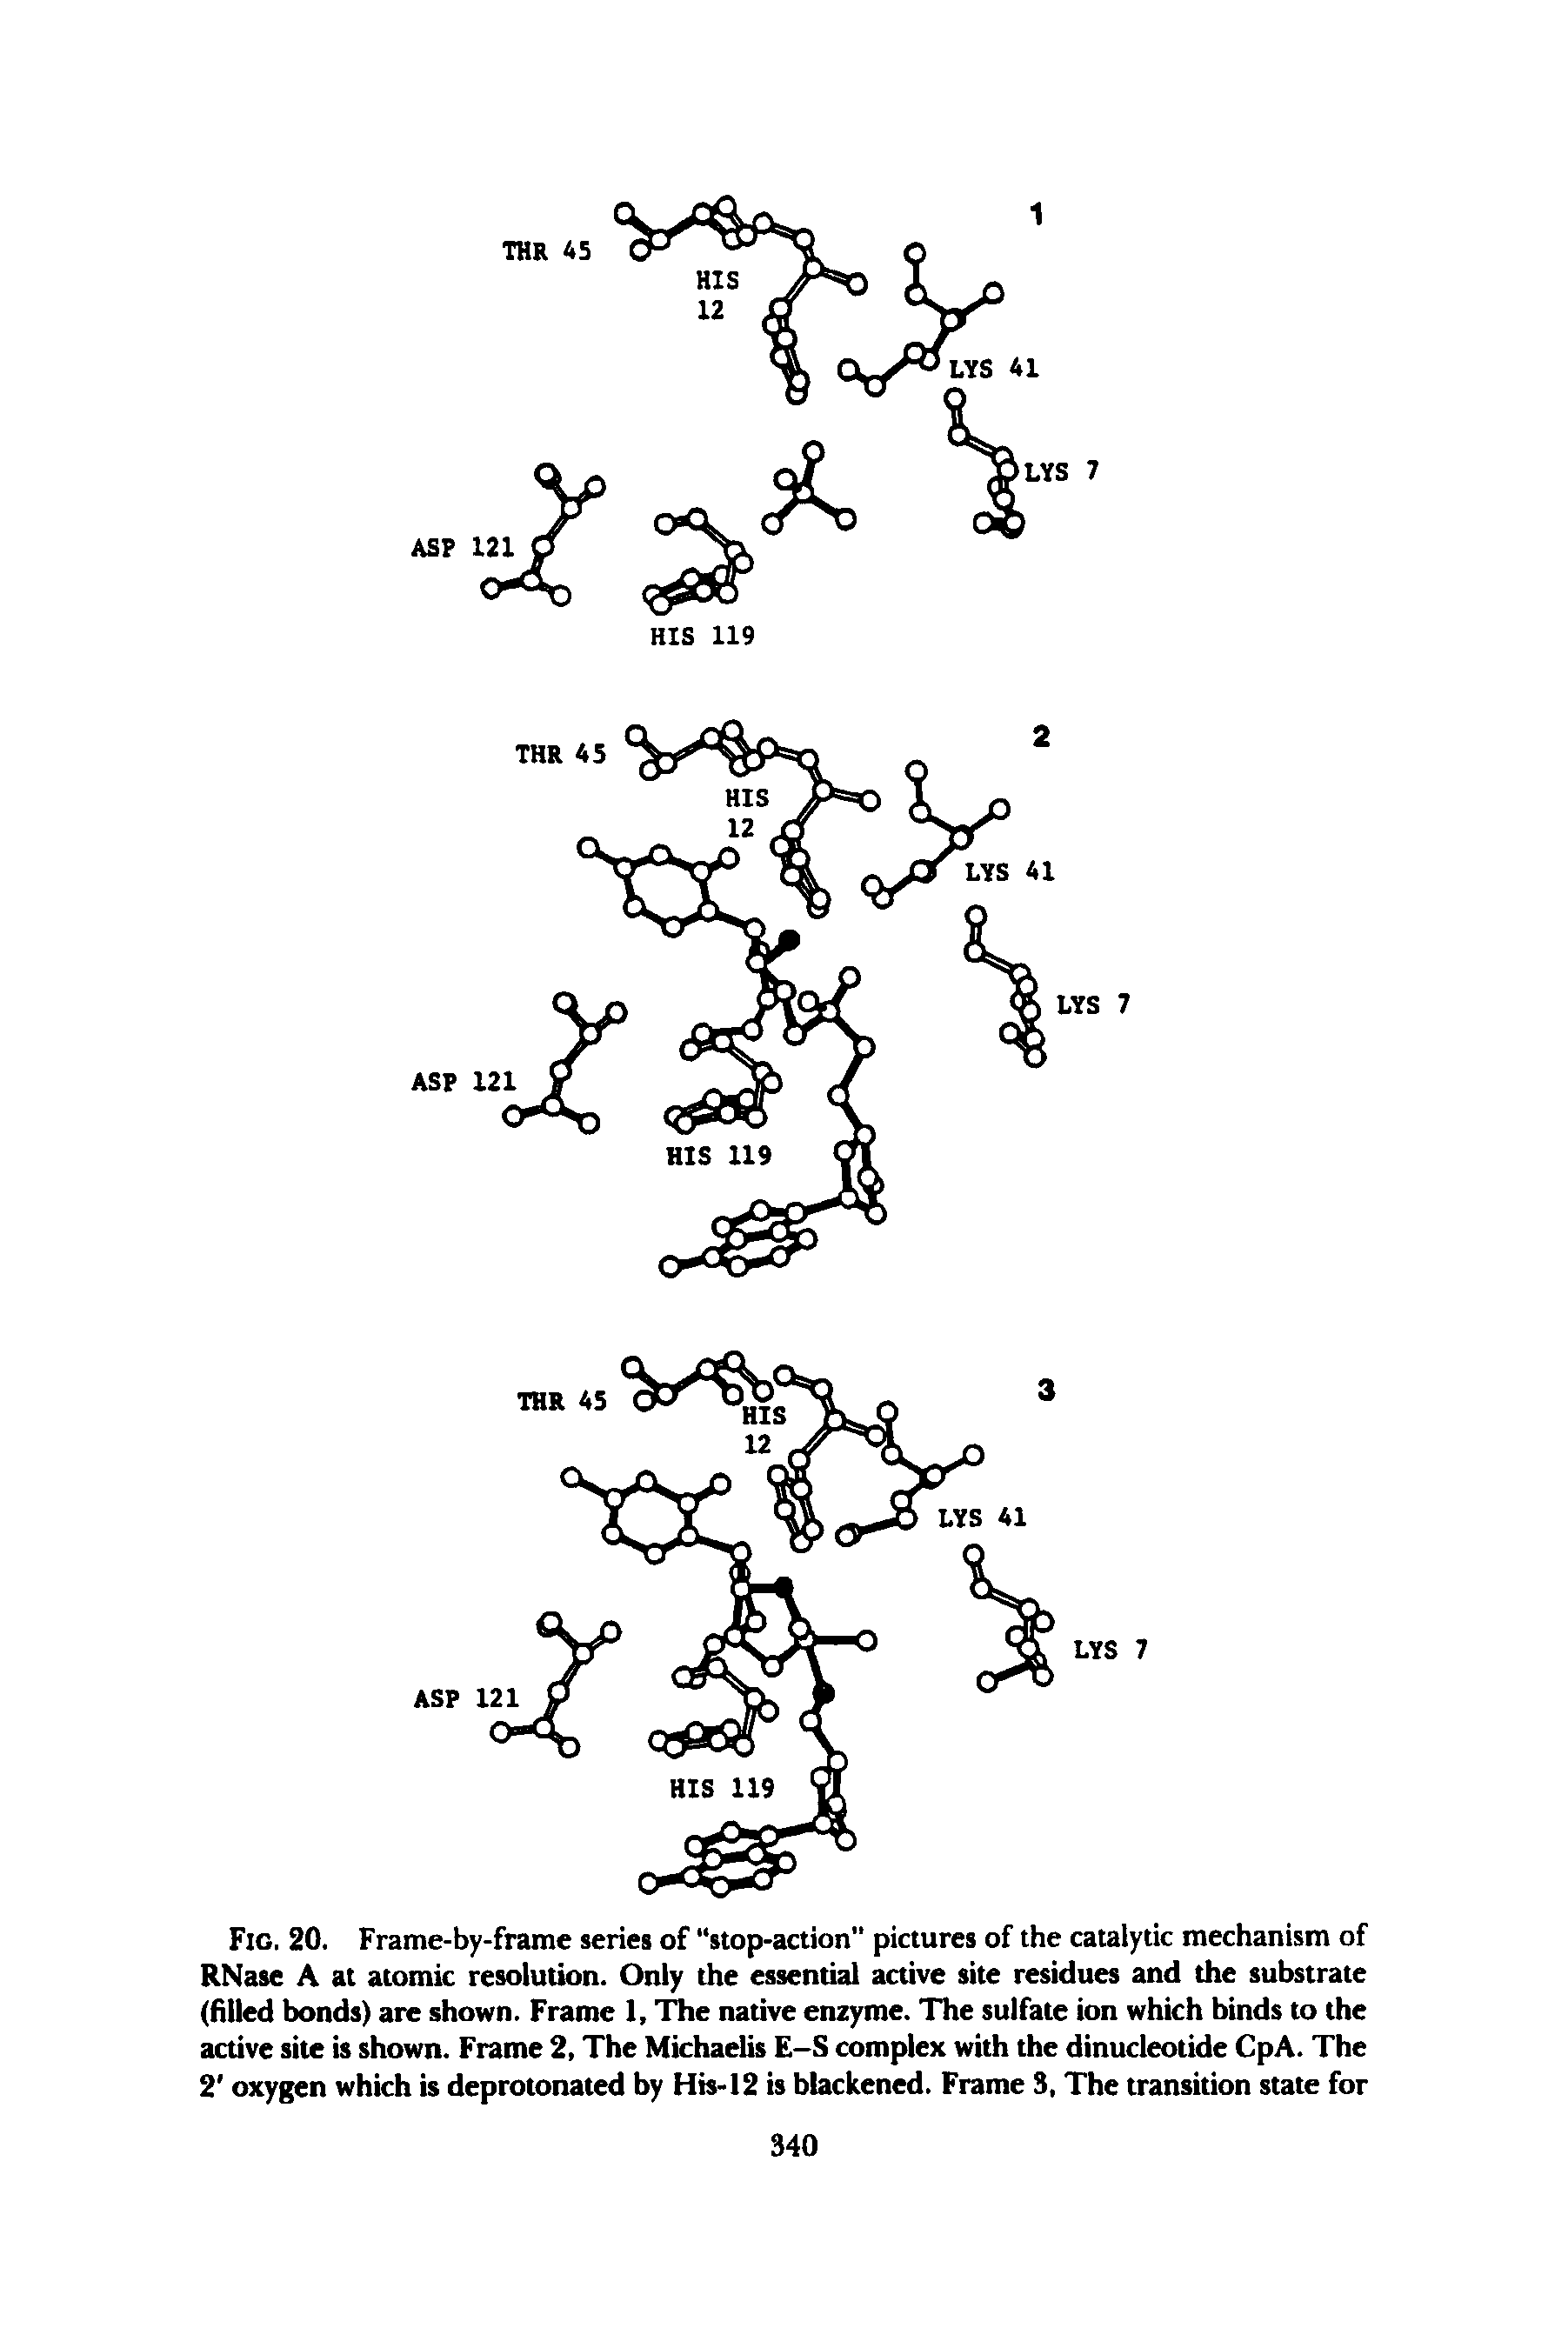 "Fig. 20. Frame-by-frame series of stop-action pictures of the <a href=""/info/catalytic_mechanism"">catalytic mechanism</a> of RNase A at <a href=""/info/atomic_resolution"">atomic resolution</a>. Only the essential <a href=""/info/active_site_residues"">active site residues</a> and the substrate (filled bonds) are shown. Frame 1, l e <a href=""/info/native_enzyme"">native enzyme</a>. The sulfate ion which binds to the <a href=""/info/active_sites"">active site</a> is shown. Frame 2, The Michaelis E-S <a href=""/info/complexes_with"">complex with</a> the dinucleotide CpA. The 2 oxygen which is deprotonated by His-12 is blackened. Frame 3, The transition state for"